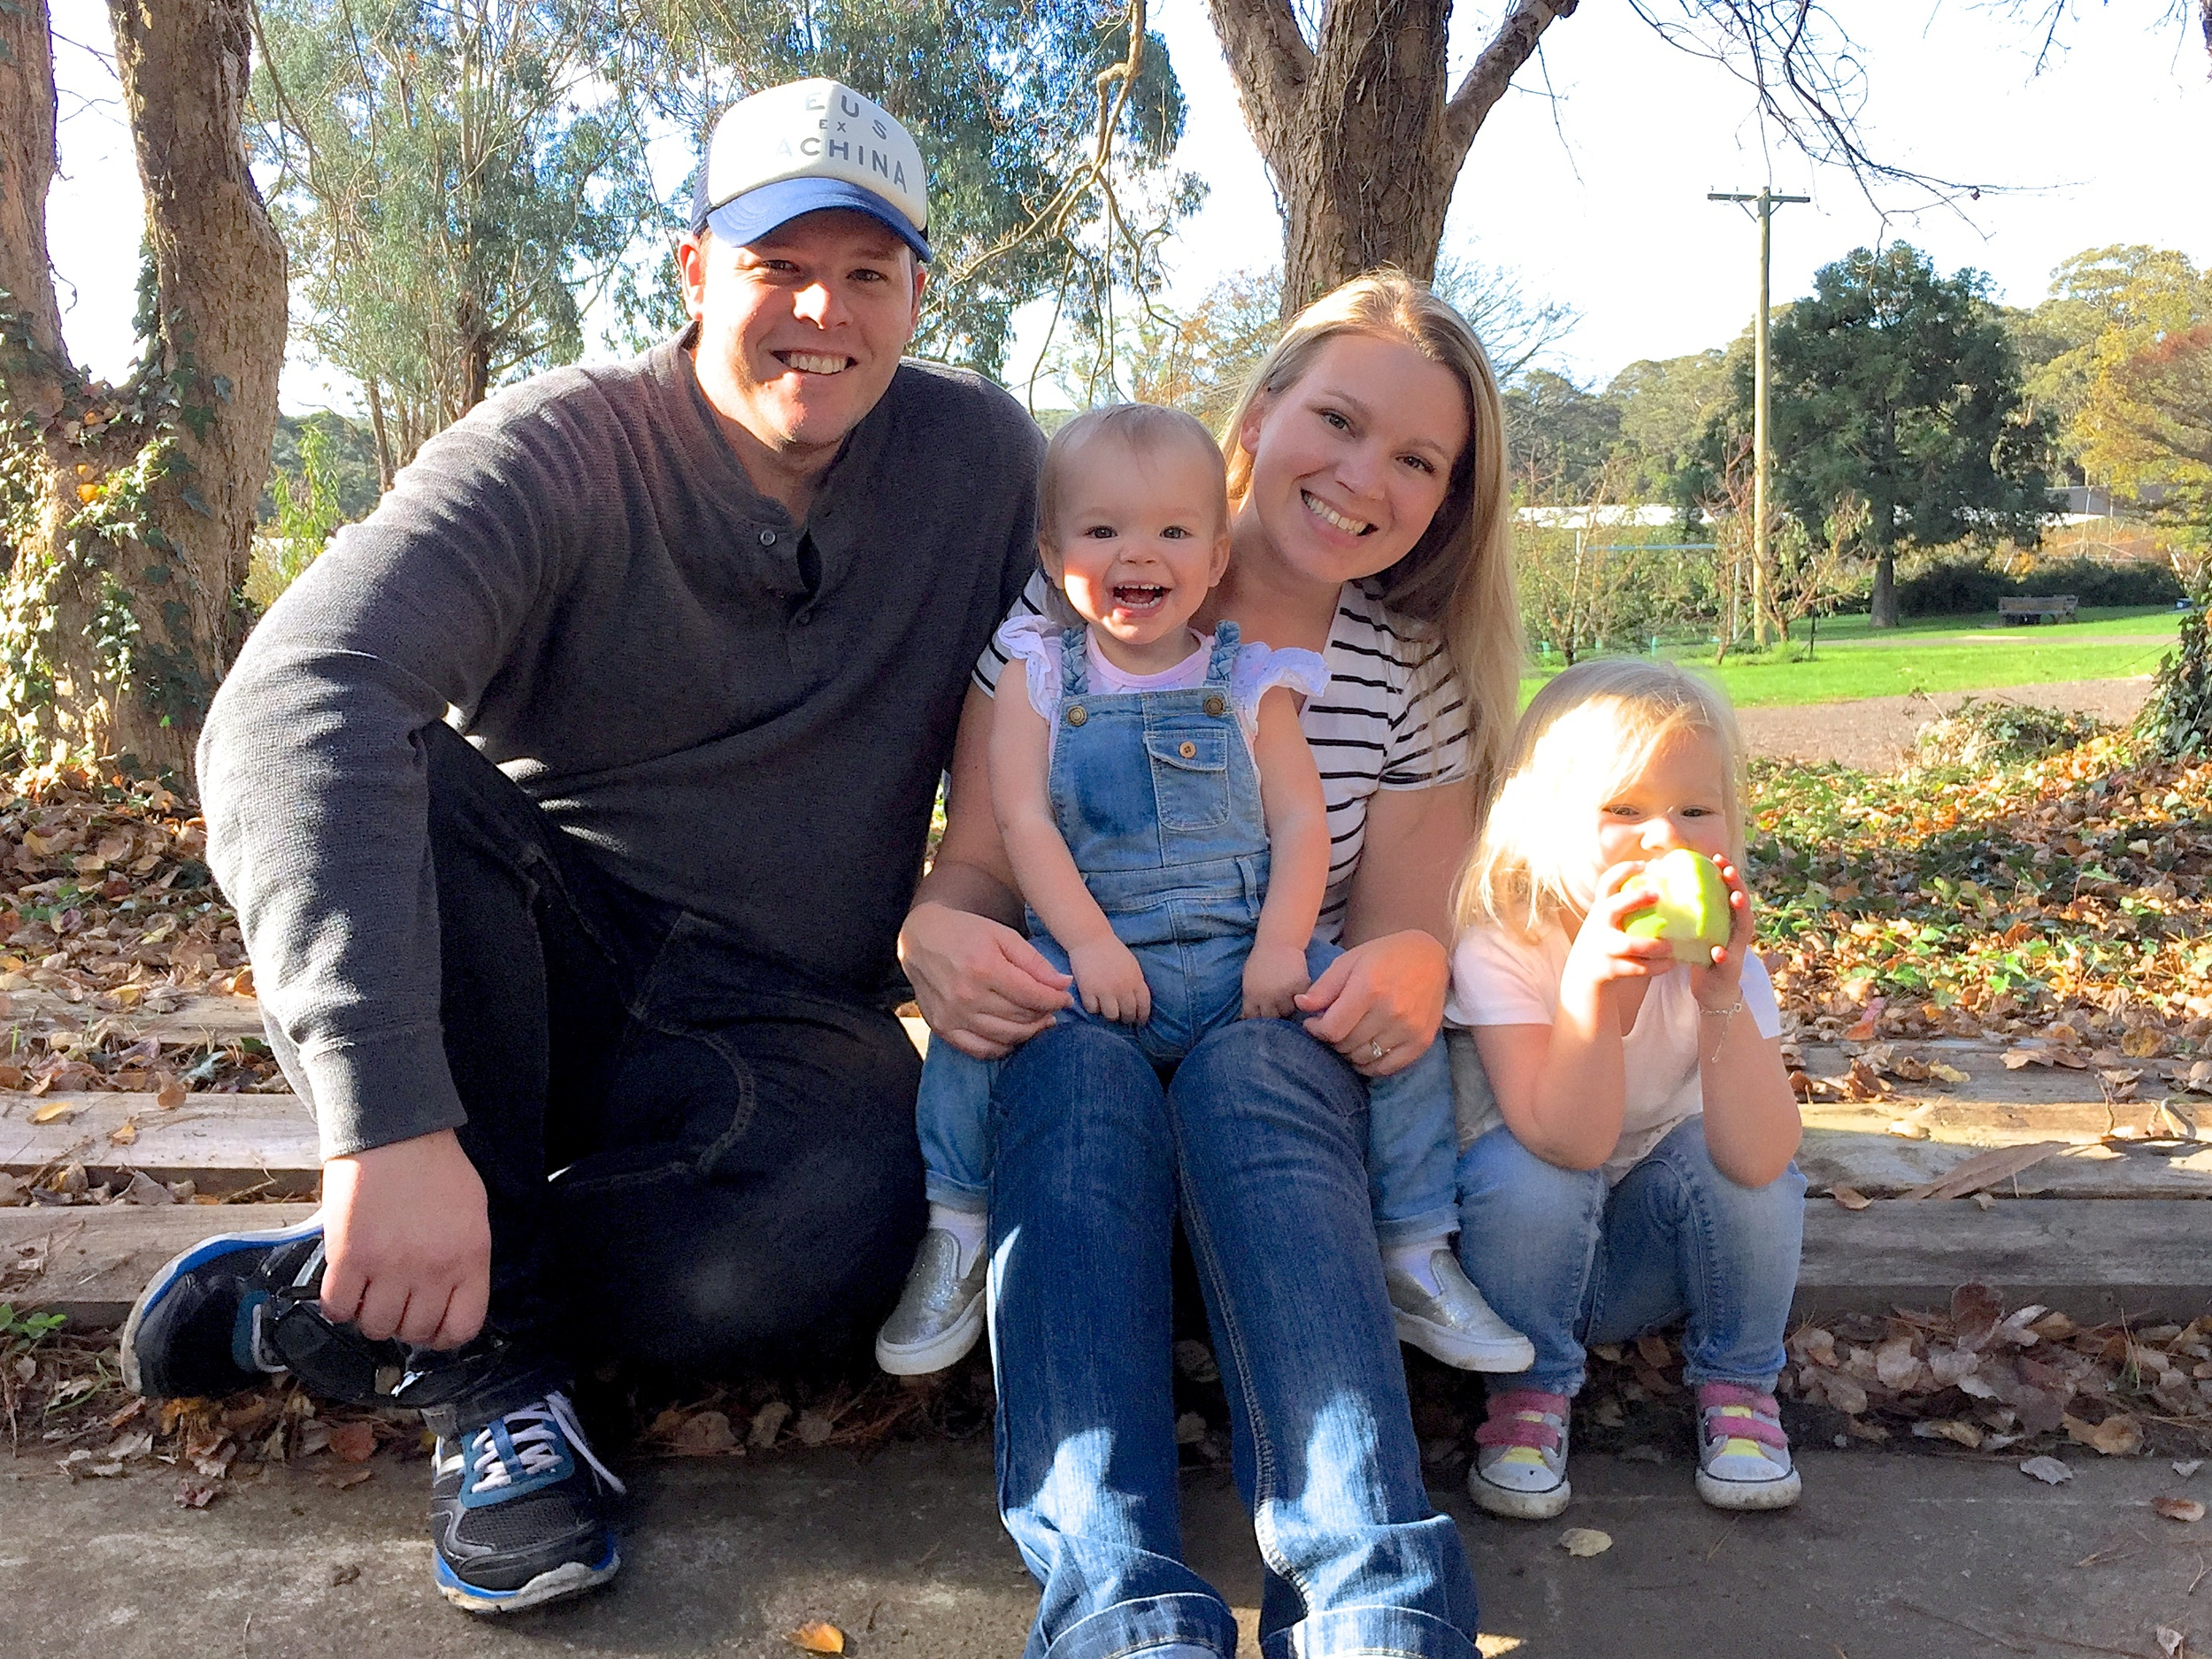 Jenna with Hubby Pete and two adorable girls Ava and Hallie